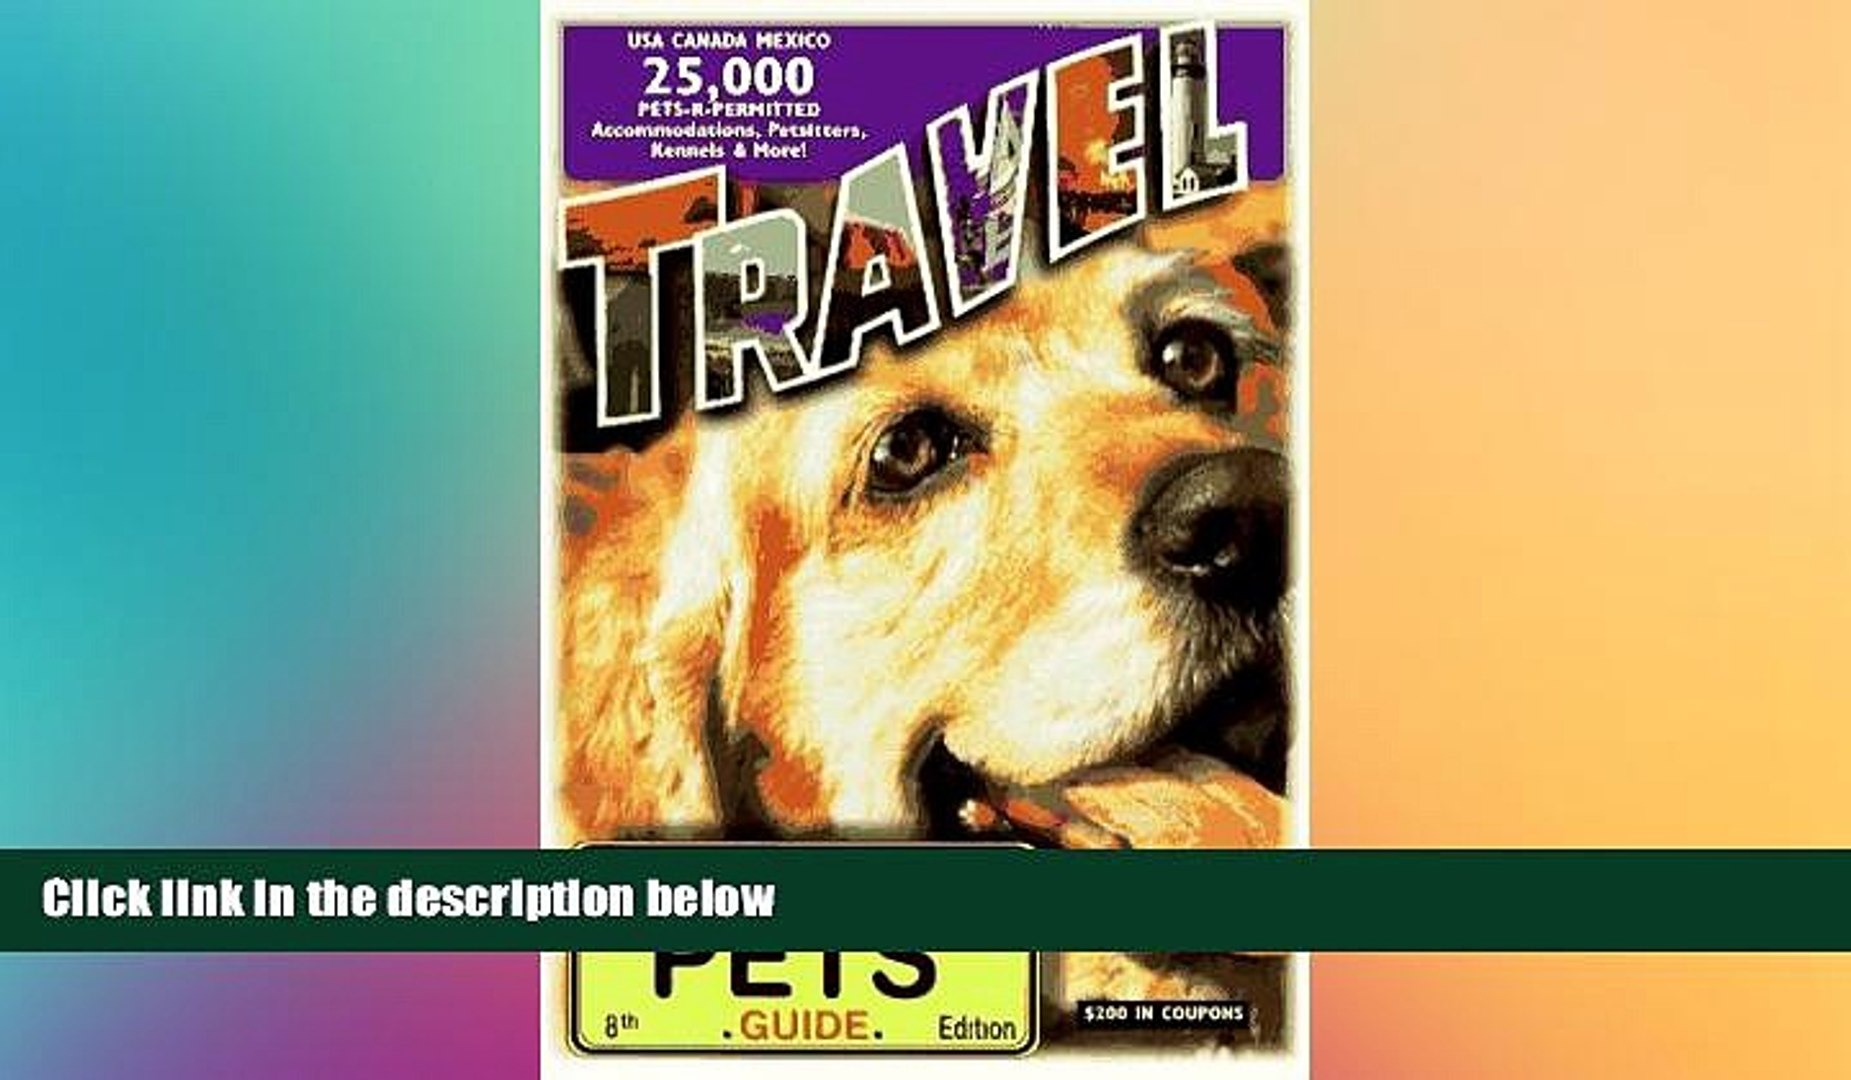 READ FULL  Travel with or Without Pets: 25,000 Pets-R-Permitted Accomodations, Petsitters,